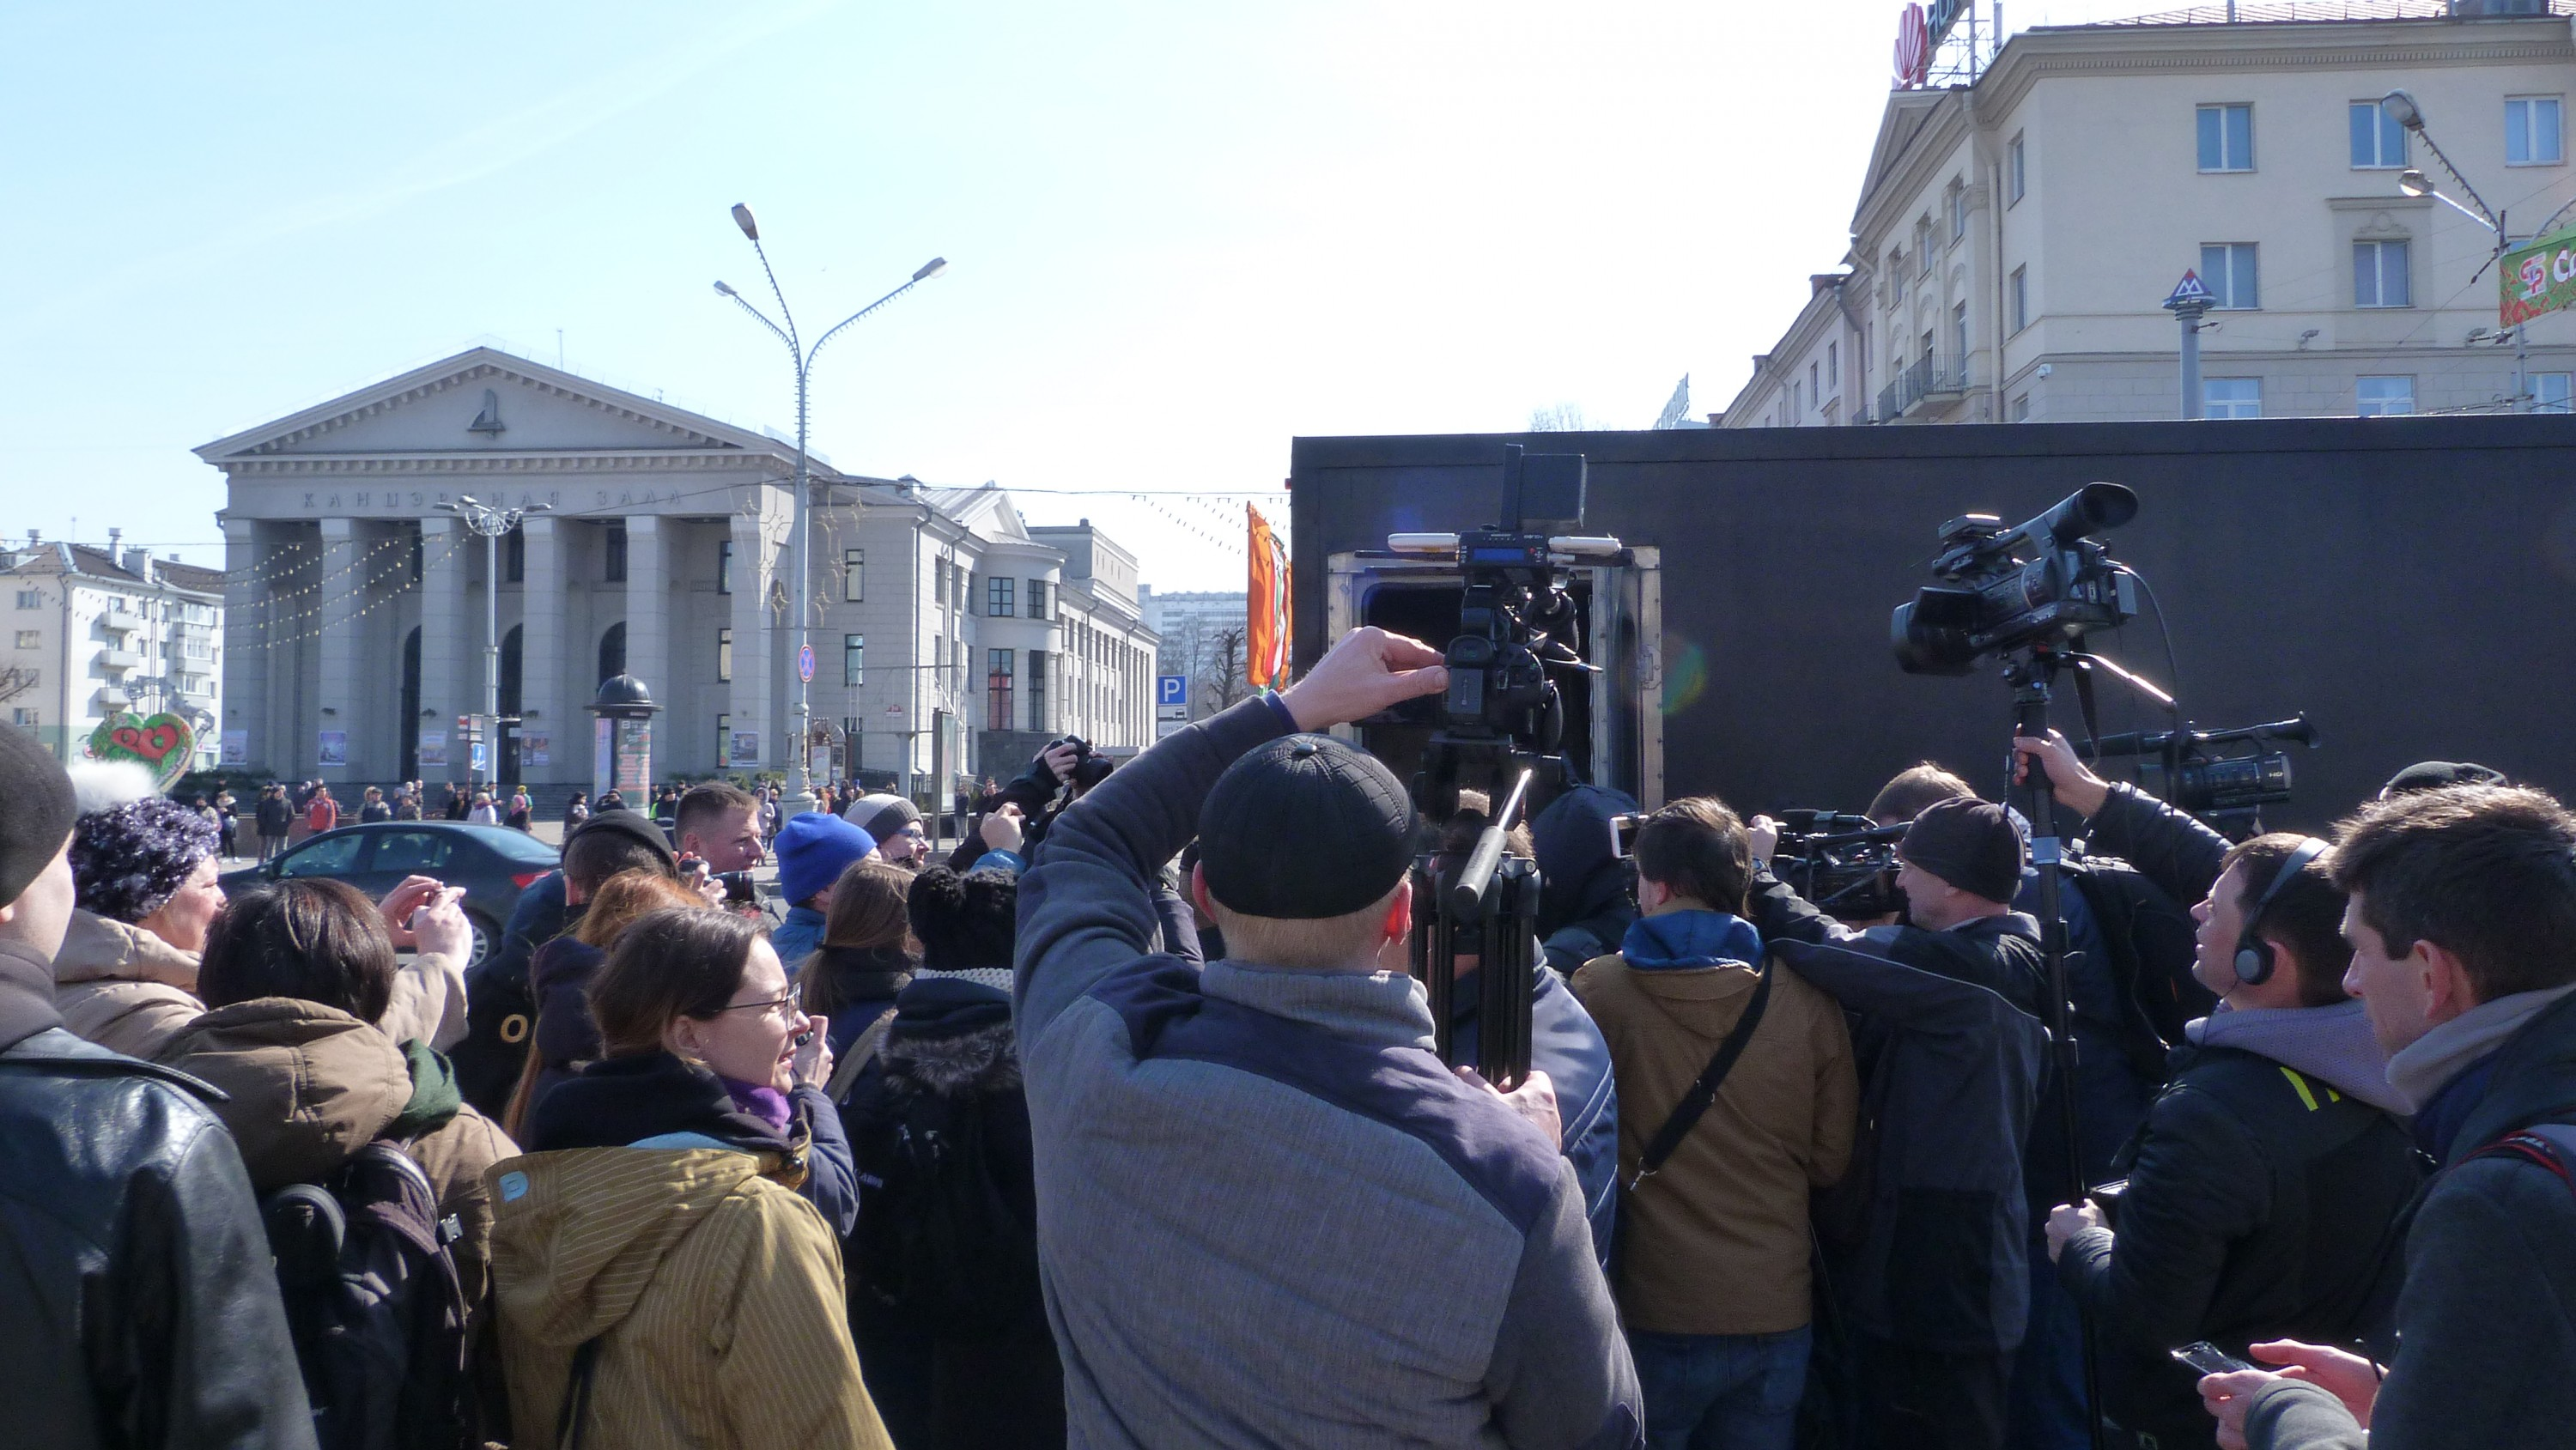 Peaceful assembly on March 25, 2018 in Minsk